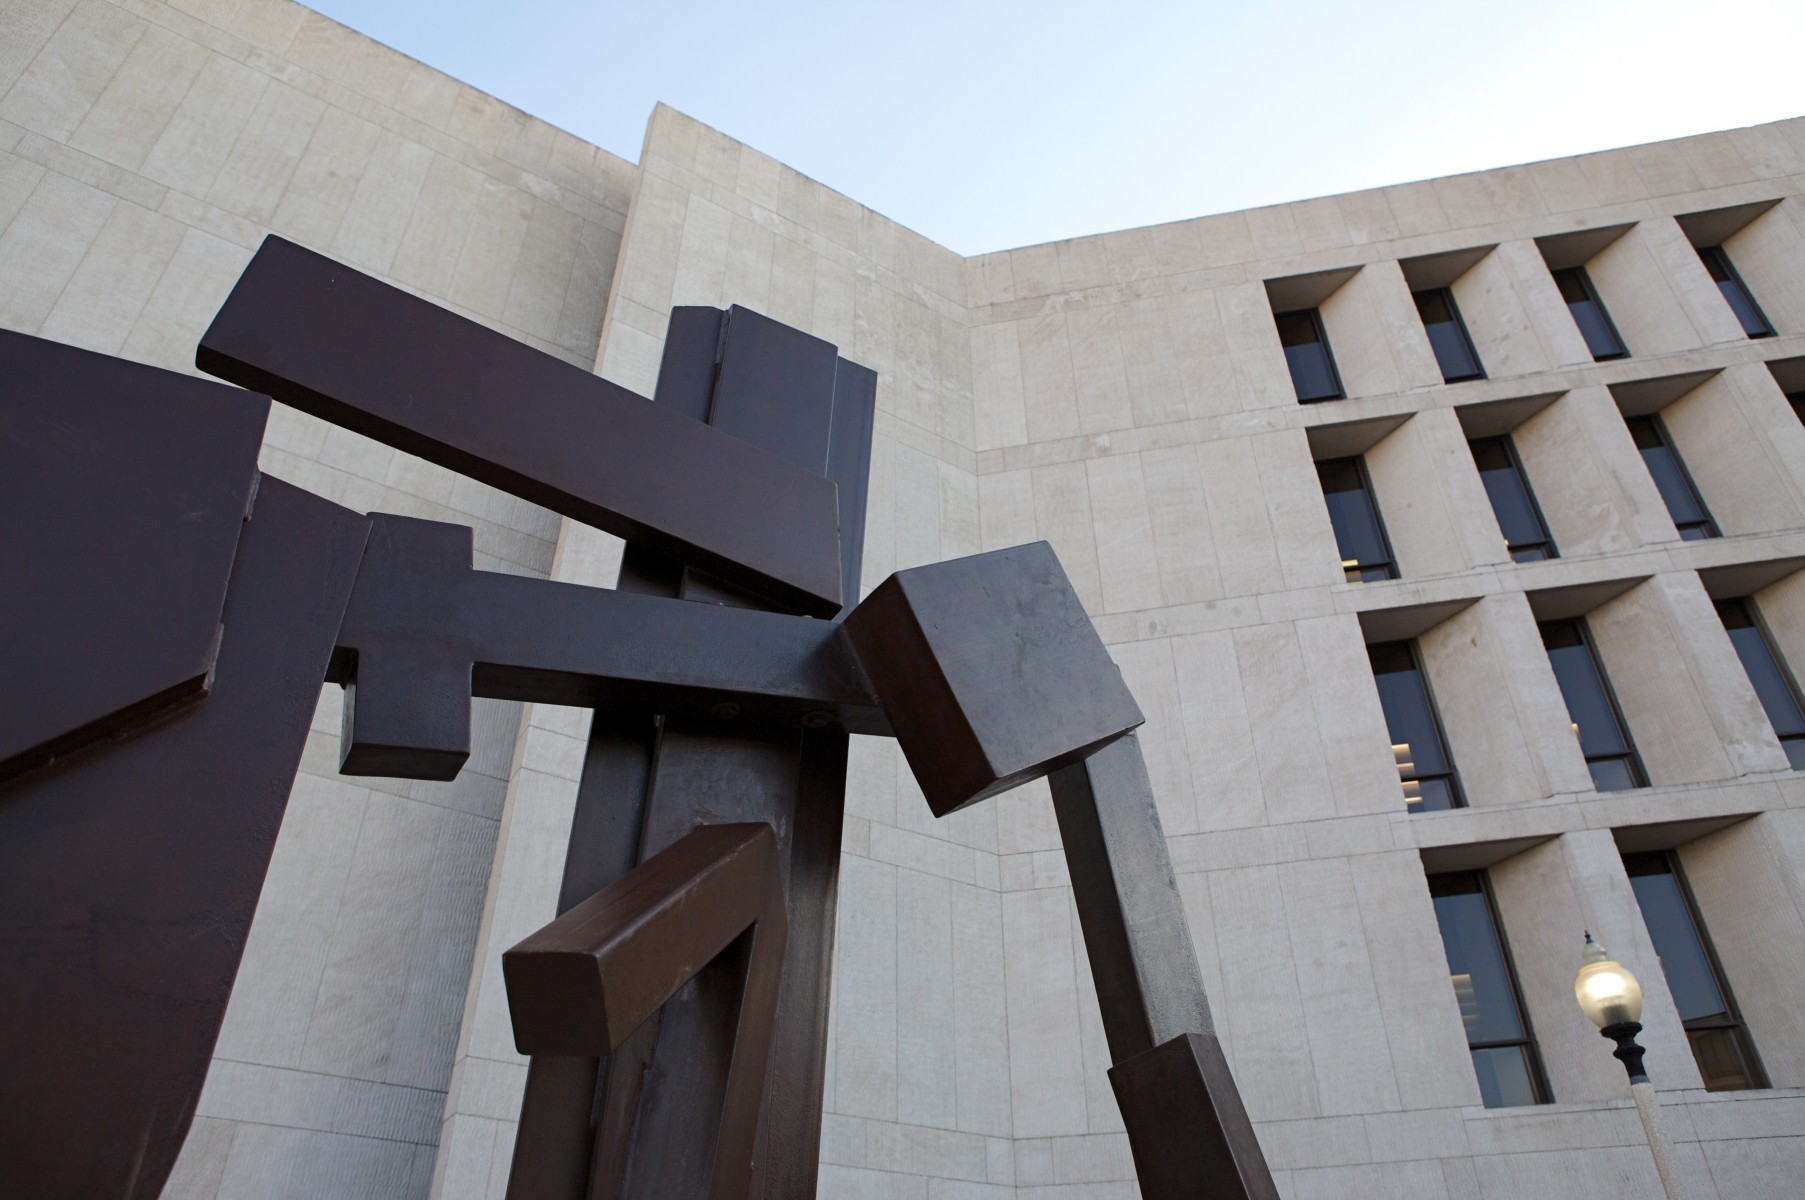 flat brown surface sculpture up against limestone building